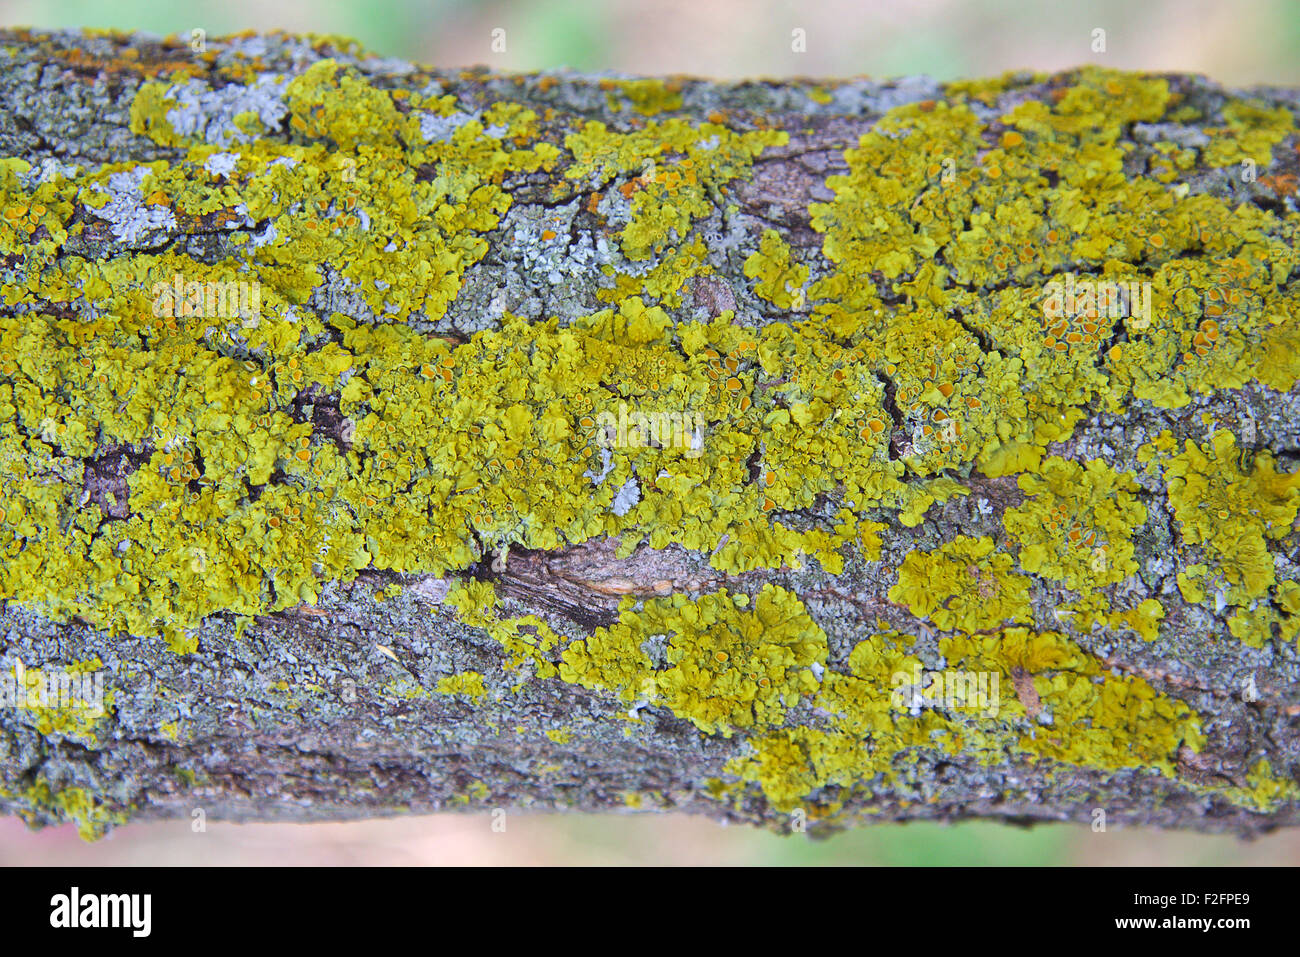 Lichen on a tree branch - Stock Image